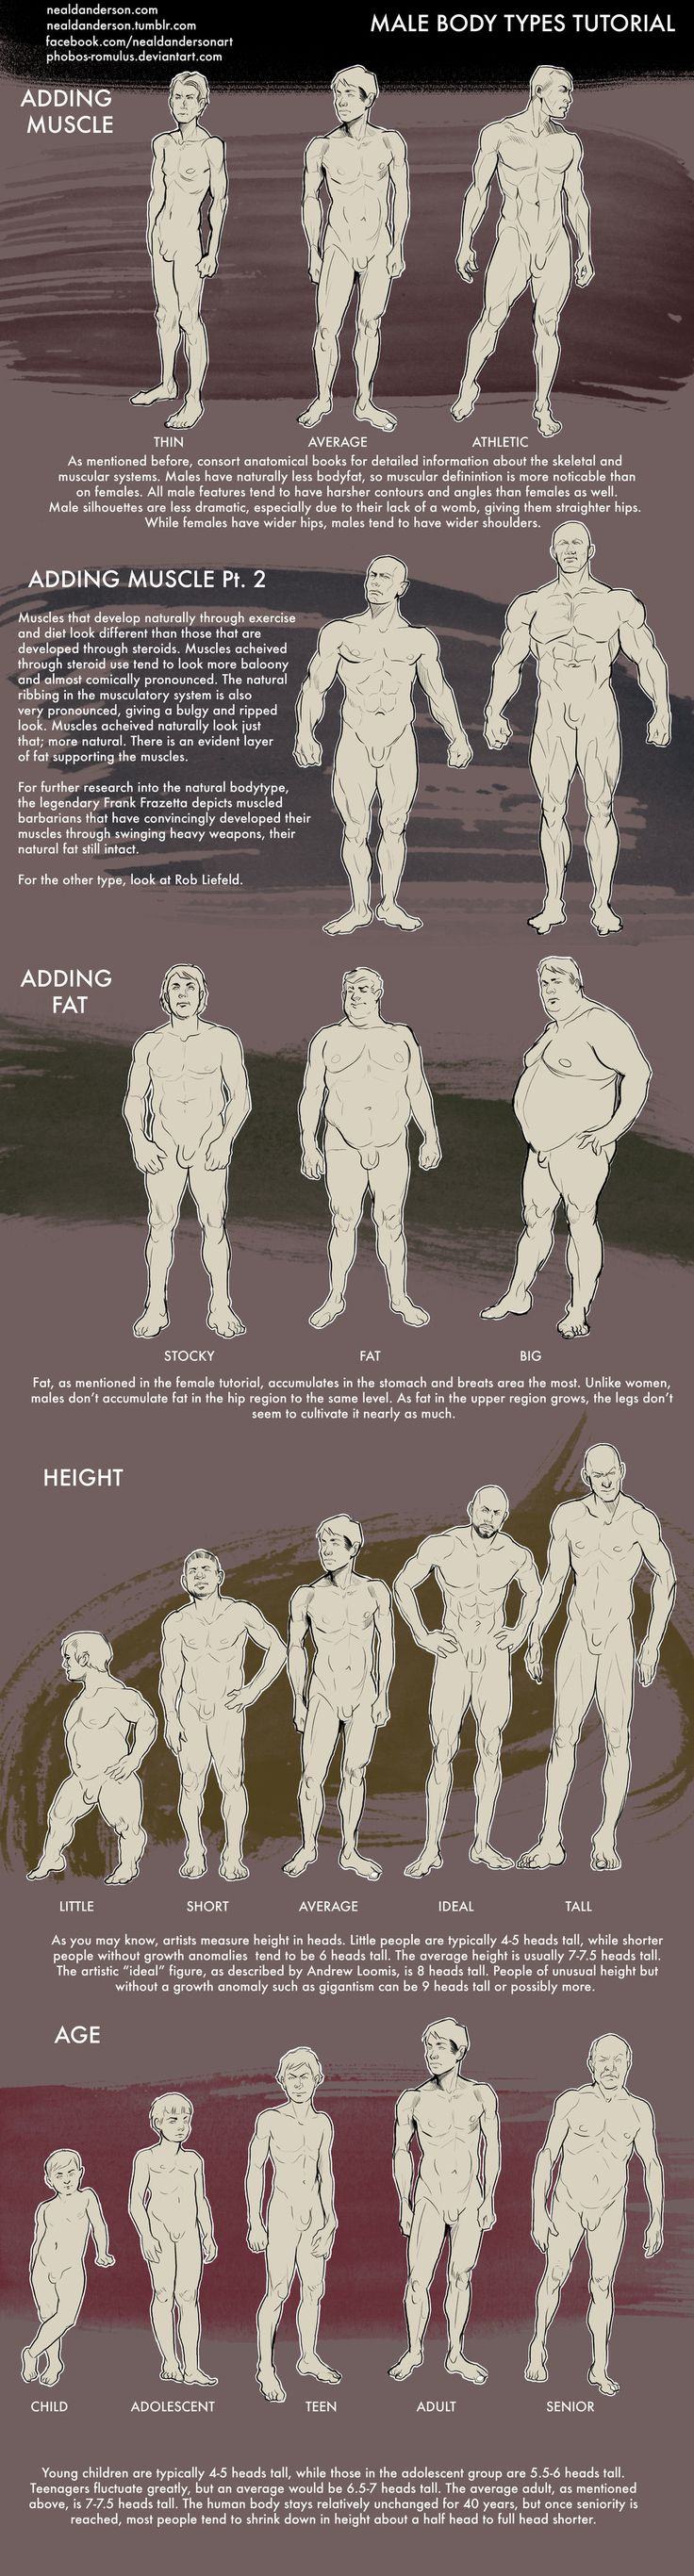 Male Body Types Tutorial by Phobos-Romulus on DeviantArt